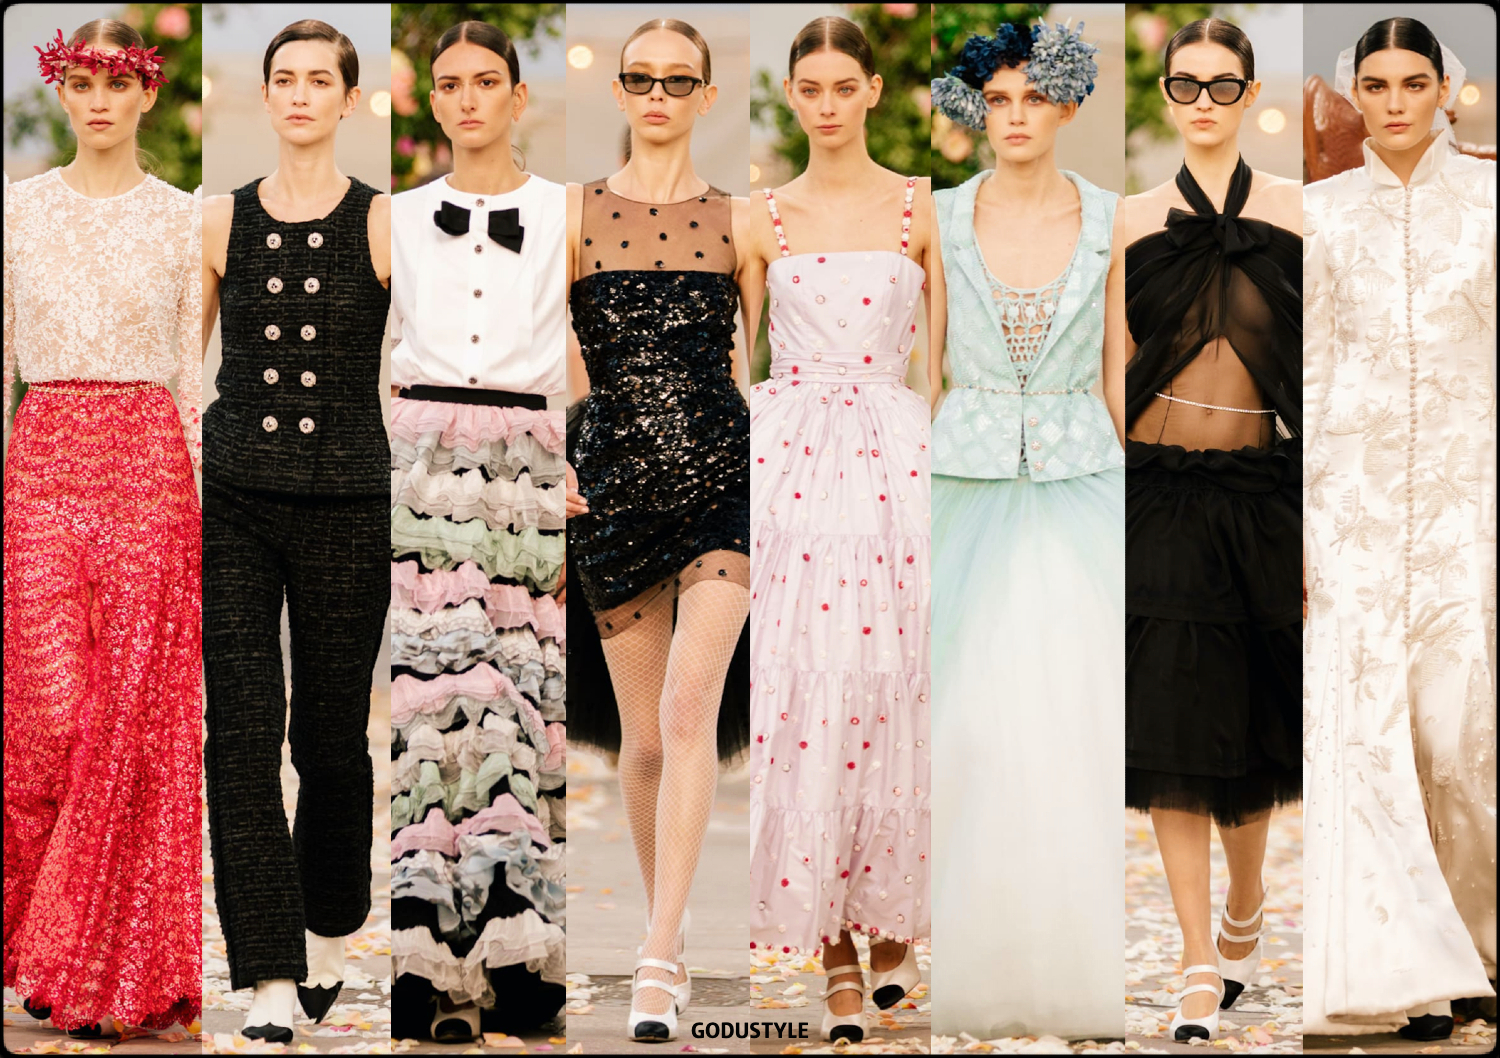 chanel-haute-couture-spring-summer-20-look-style2-details-alta-costura-godustyle